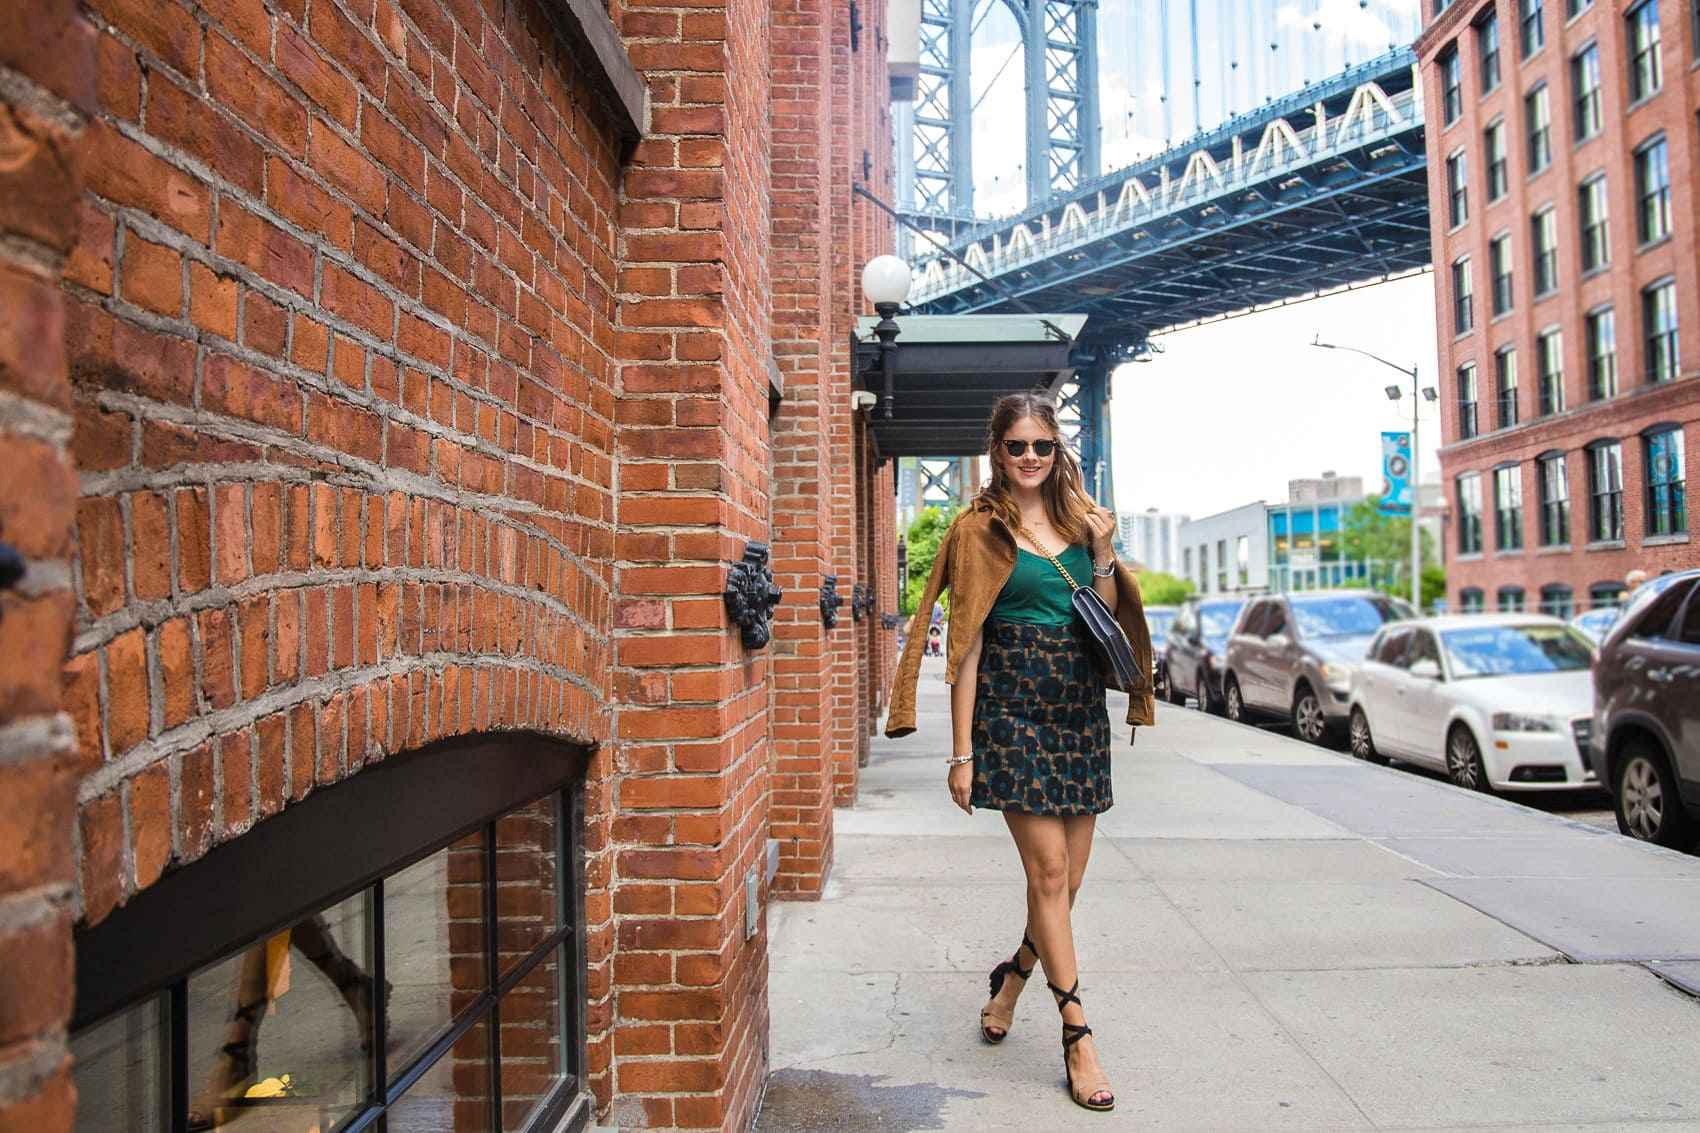 Brooklyn Dumbo Streetstyle - DIE Location für alle Gossip Girl Fans